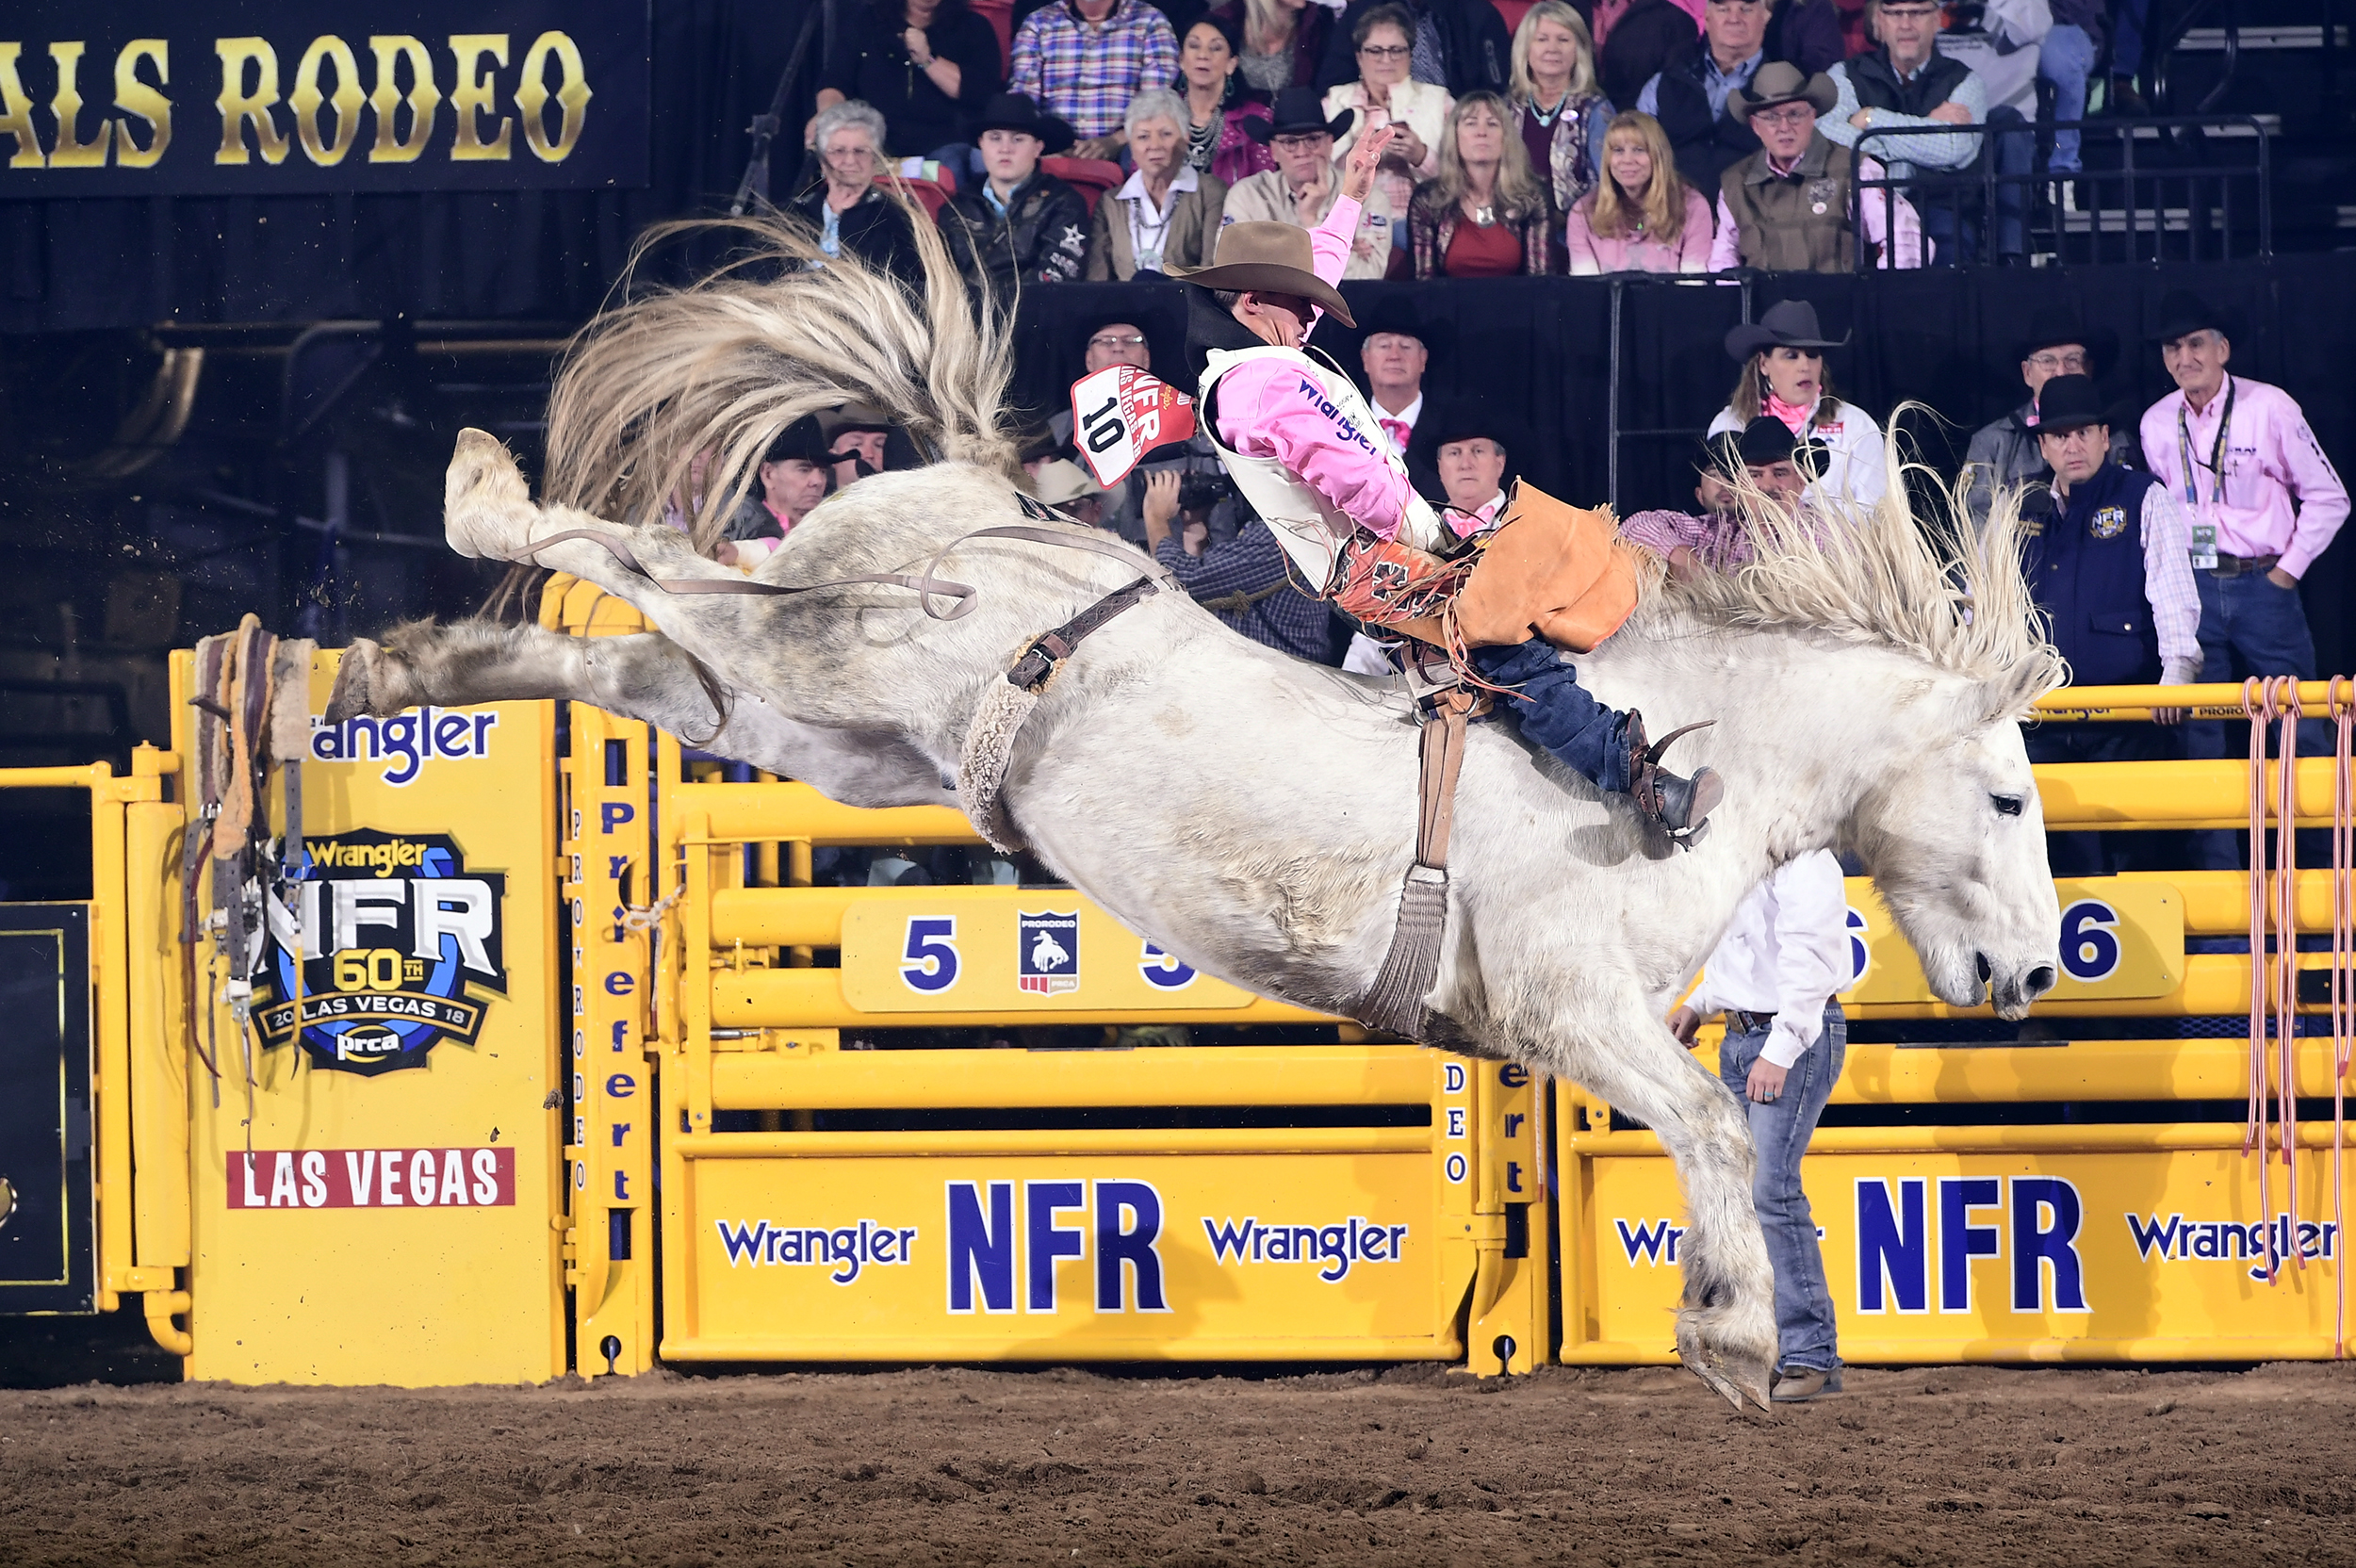 Clayton Biglow rides C5 Rodeo's Virgil, the reigning two-time Bareback Horse of the Year, for a National Finals Rodeo arena record 93 points to win Monday's fifth round. (PRCA PHOTO BY JAMES PHIFER)